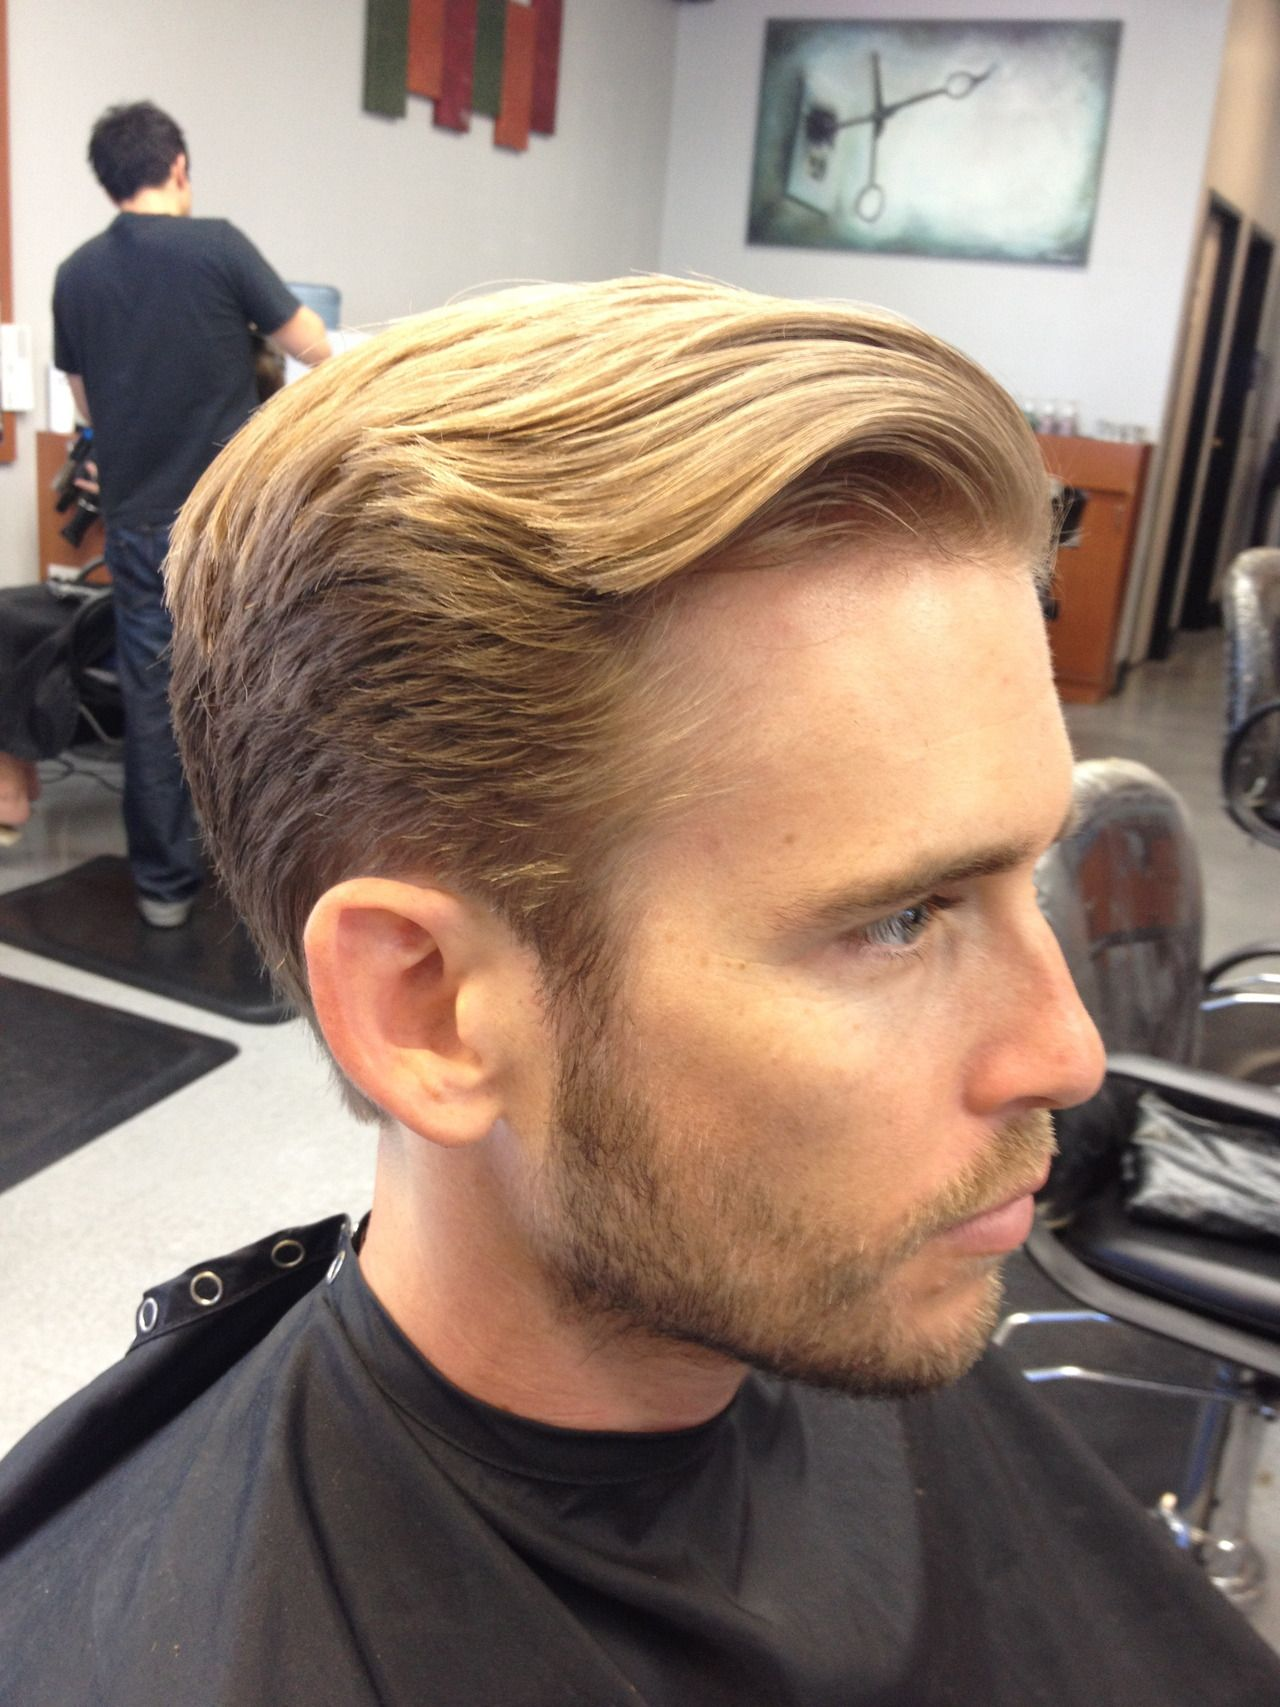 Gentleman Your Style Includes Your Haircut A Good Haircut Can Dramatically Improve Even The Messiest Of Hair Styles 2014 Mens Hairstyles Mens Hairstyles 2014